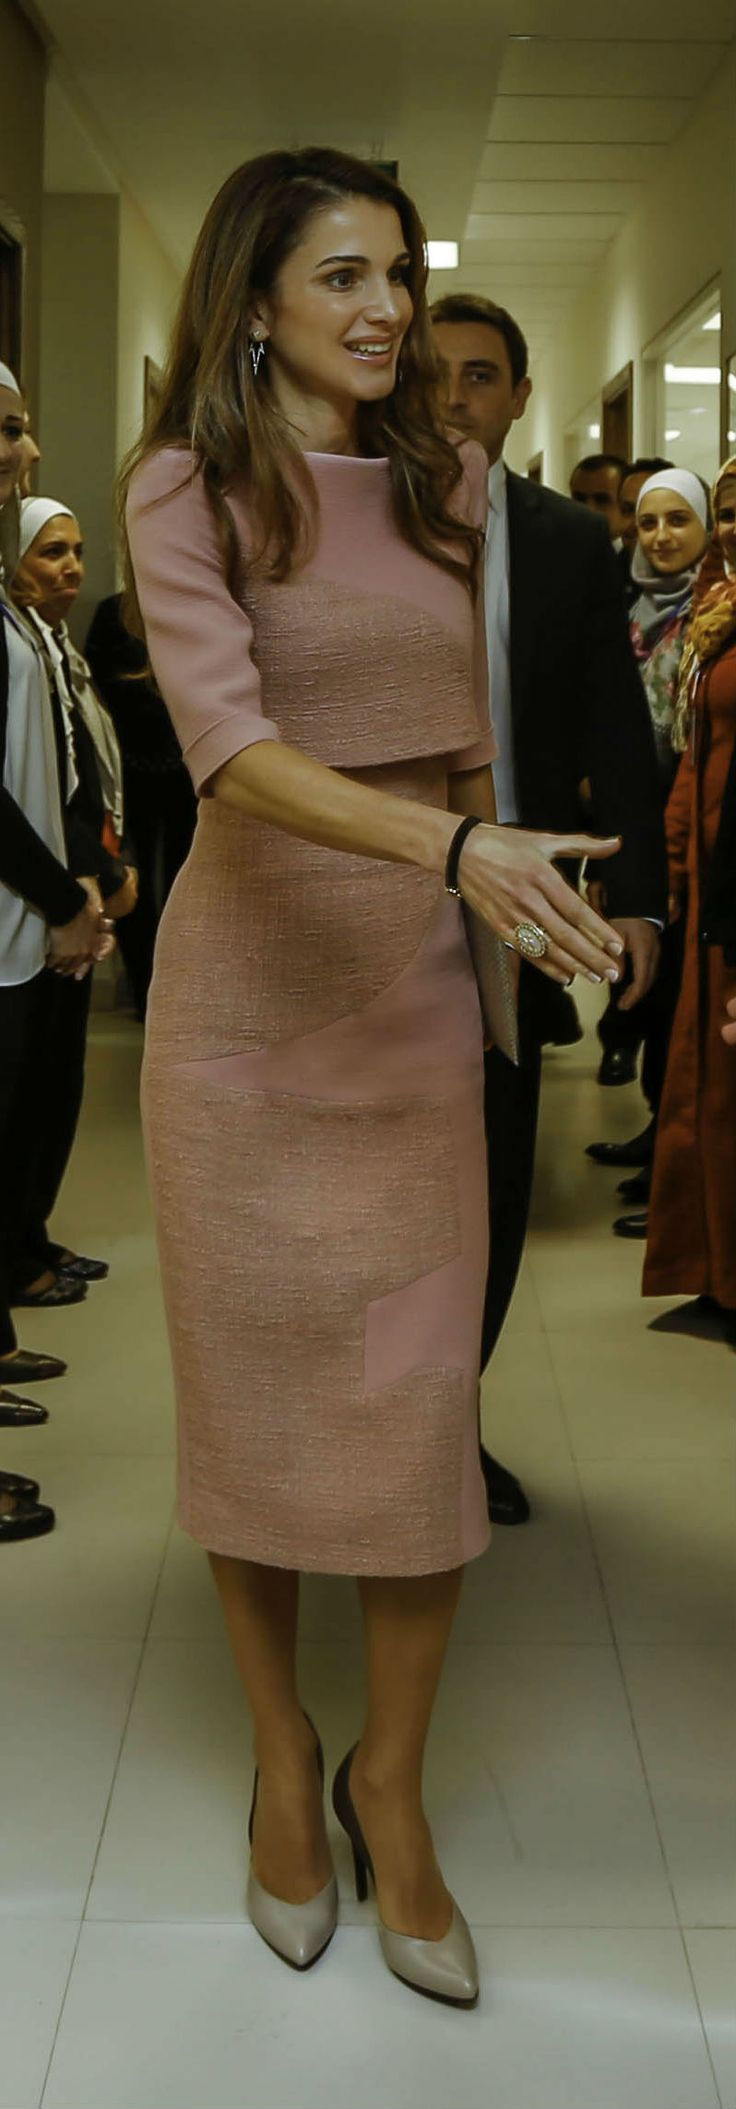 Queen Rania visits the Jordan River Foundation. nov 2014